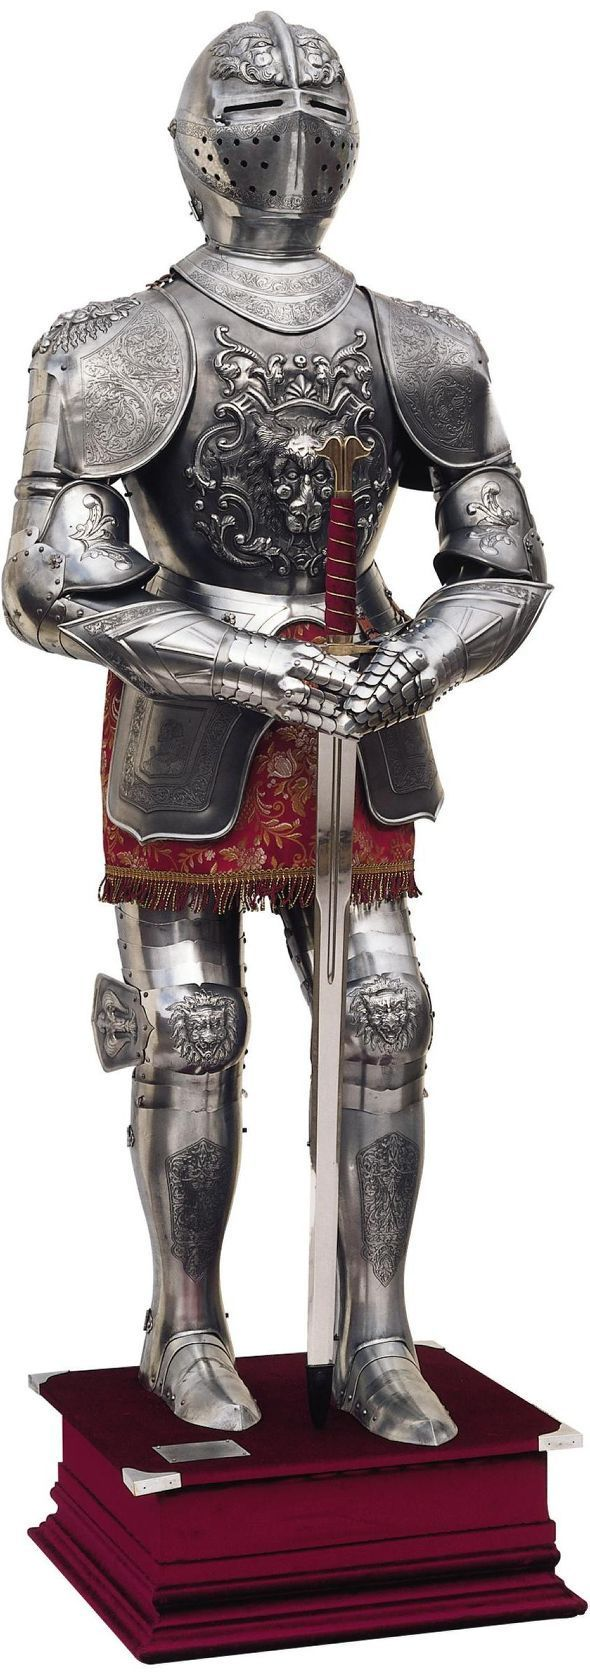 # 902 Carlos V Bas Relief Full Size Suit of Armor by Marto of Toledo Spain